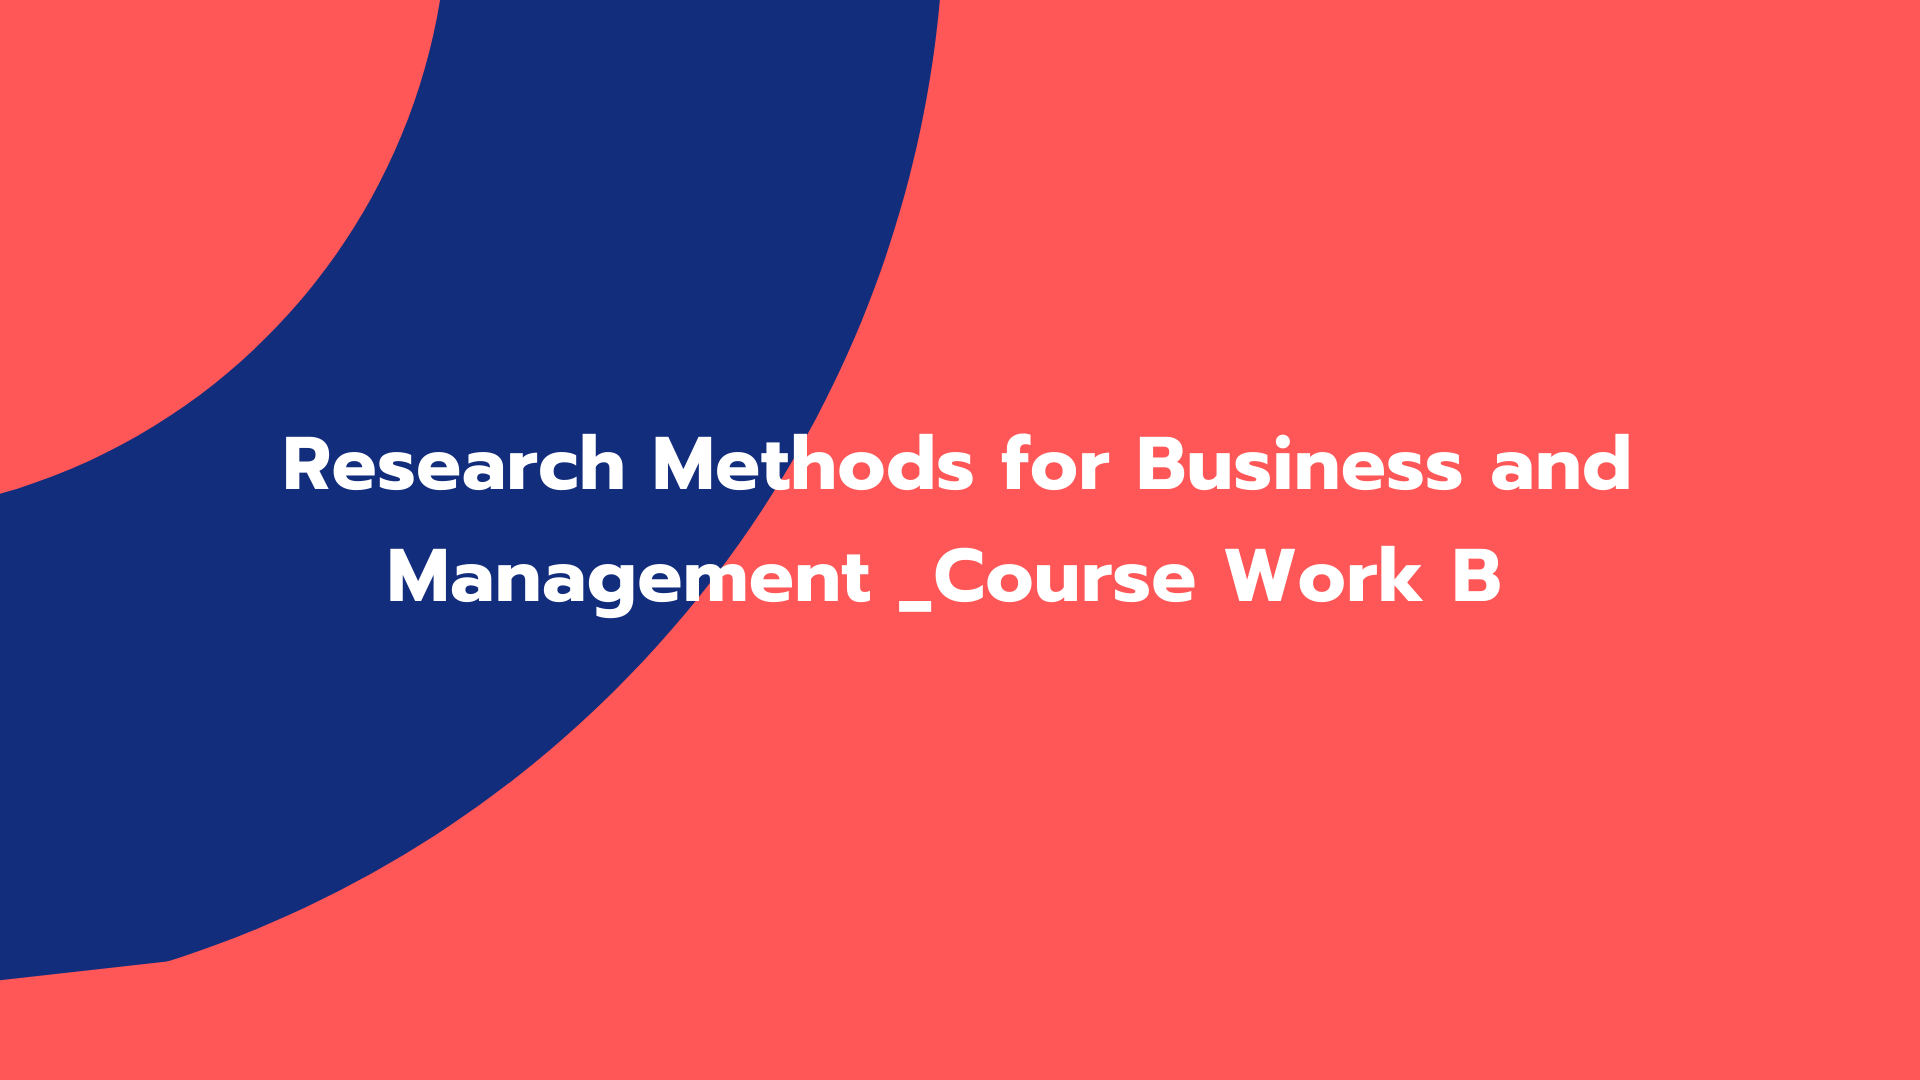 Research Methods for Business and Management _Course Work B